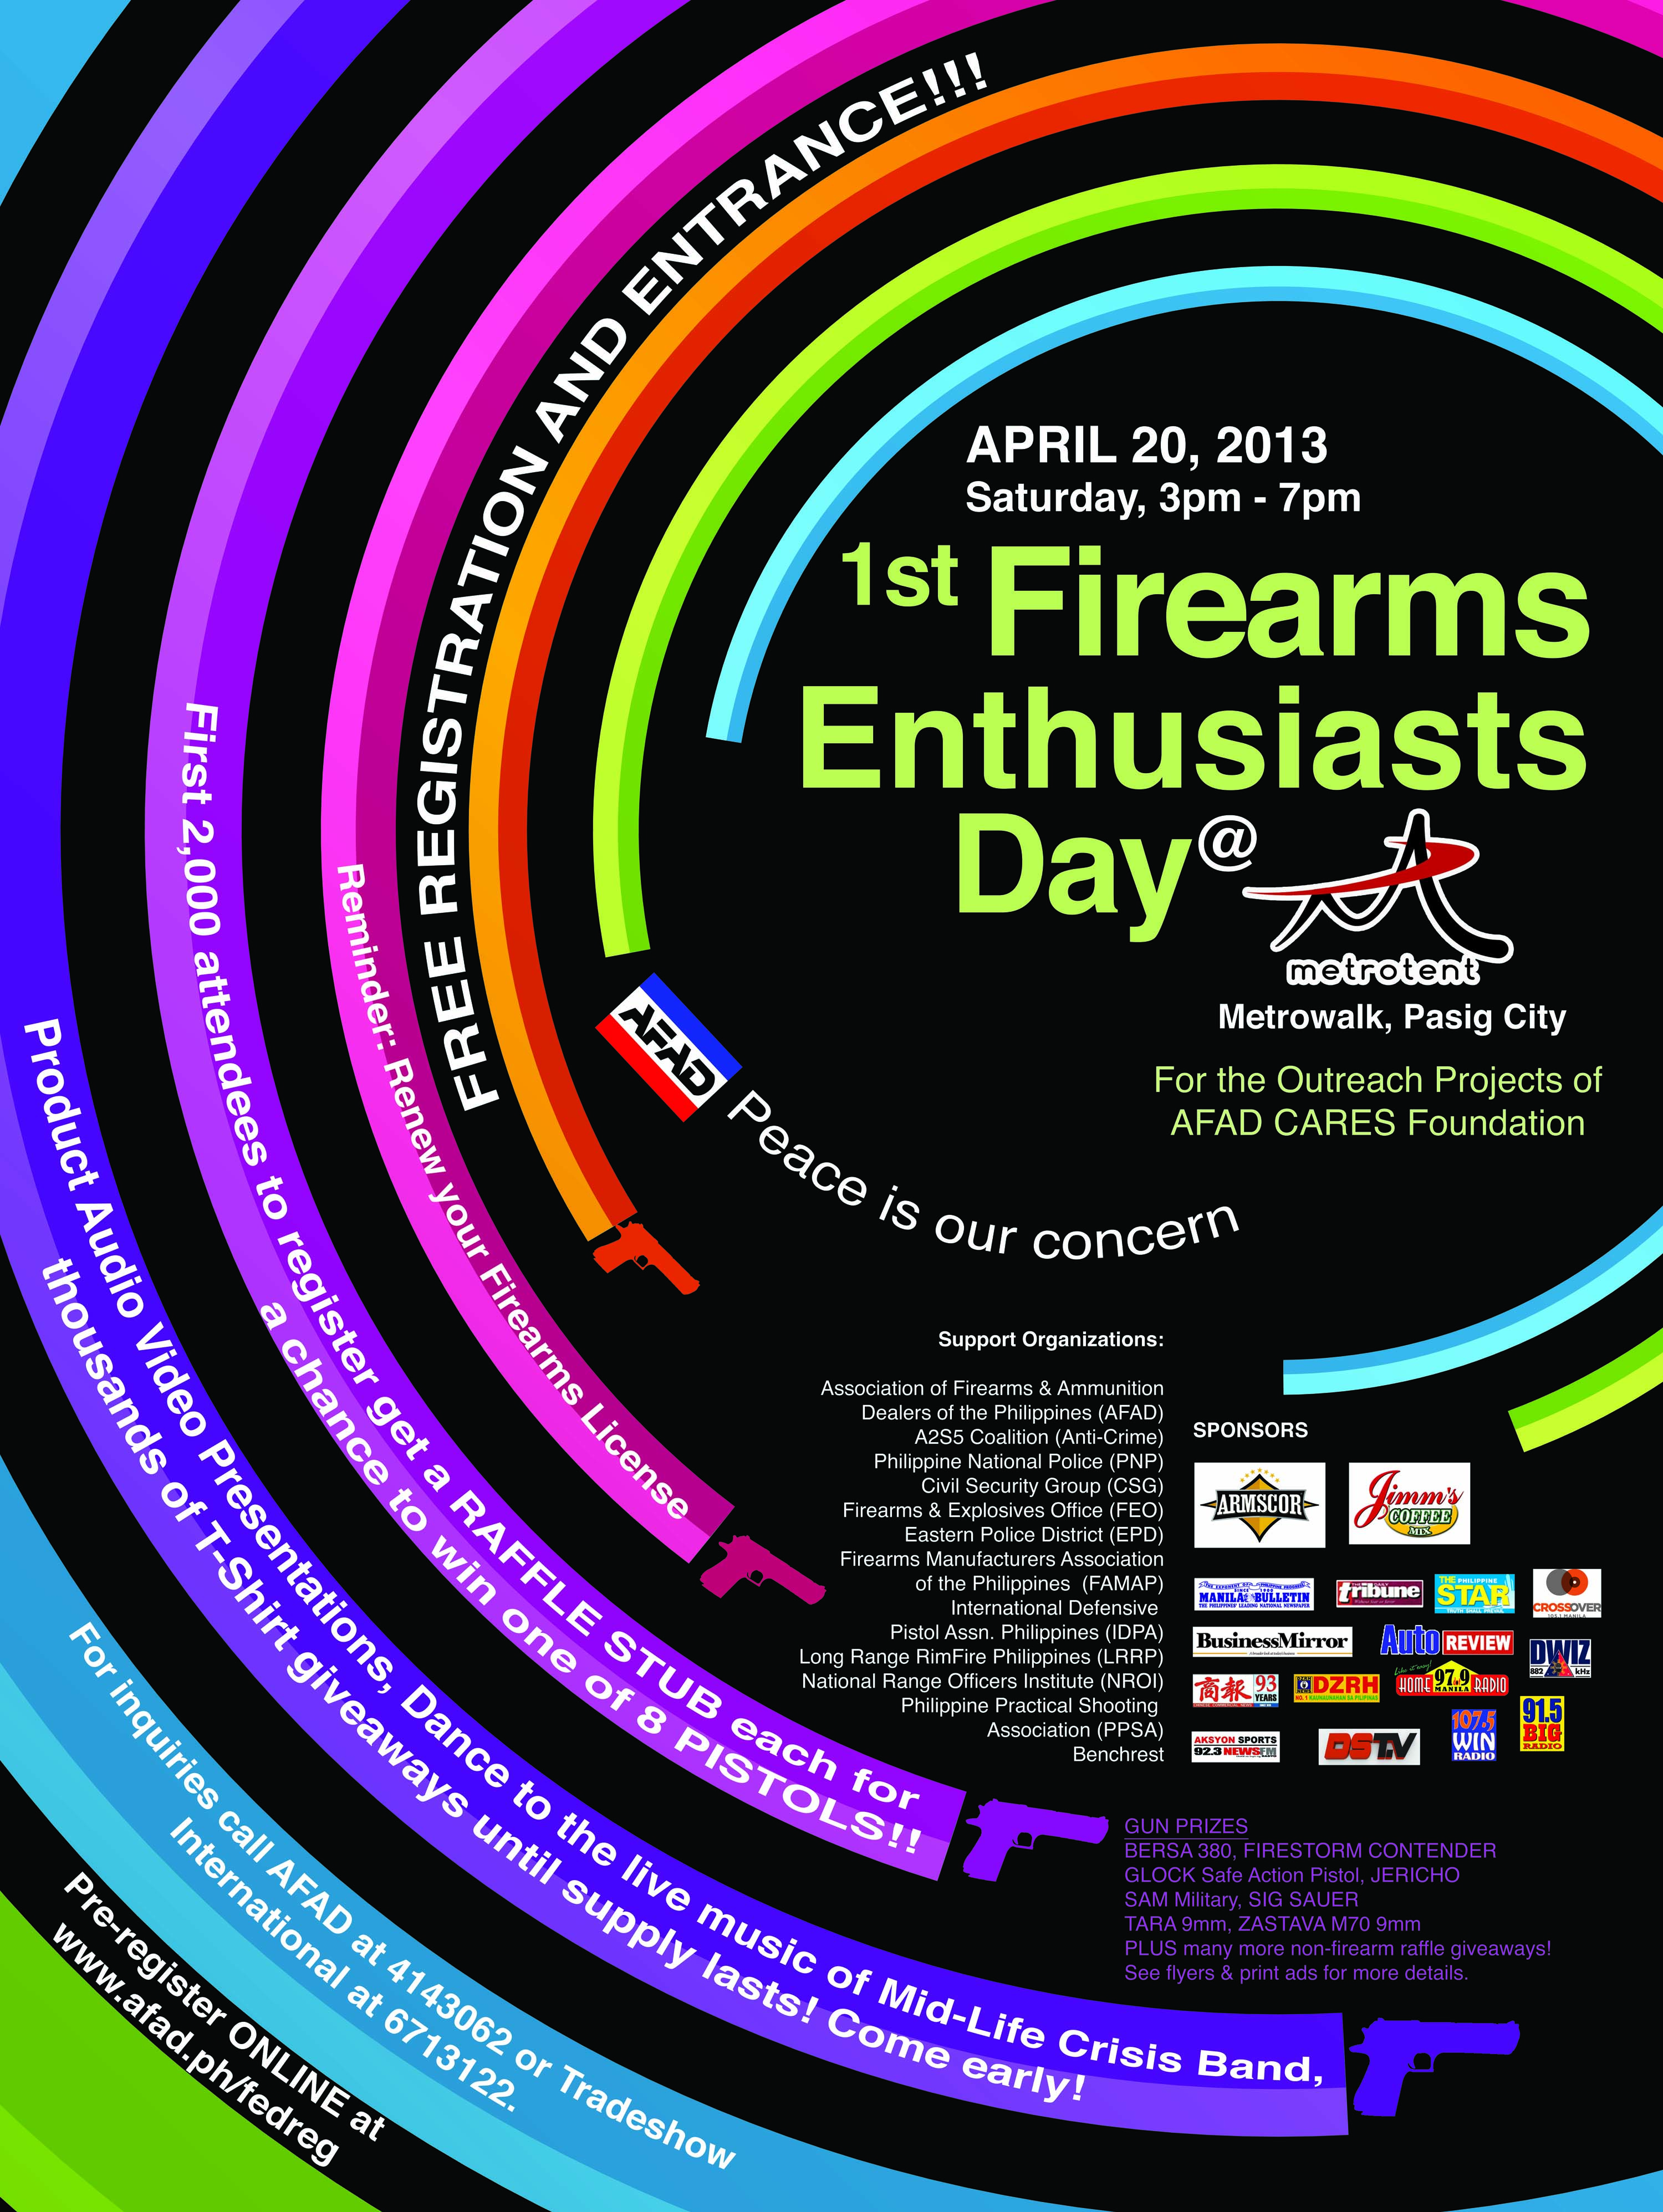 AFAD's 1st Firearms Enthusiasts Day 2013